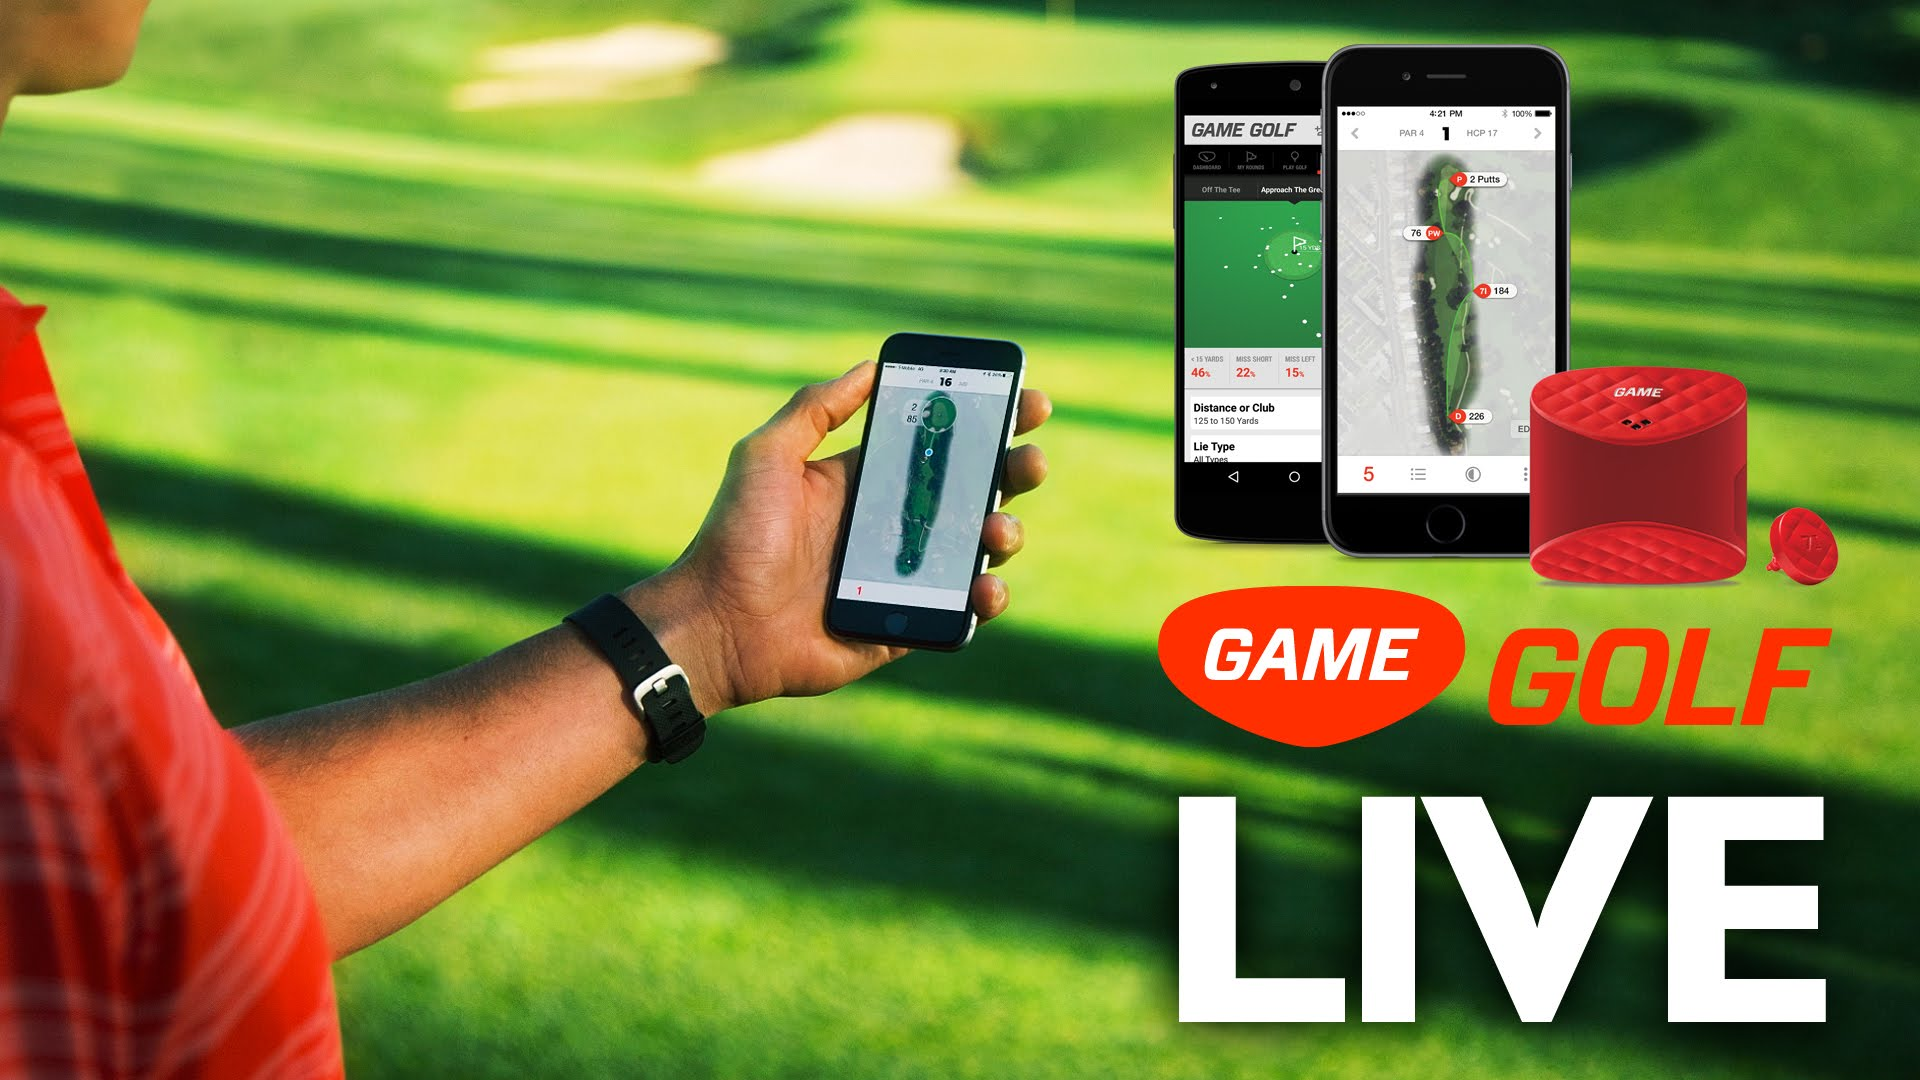 """The clue is in the title - Game Golf Live provides """"live"""" feedback"""